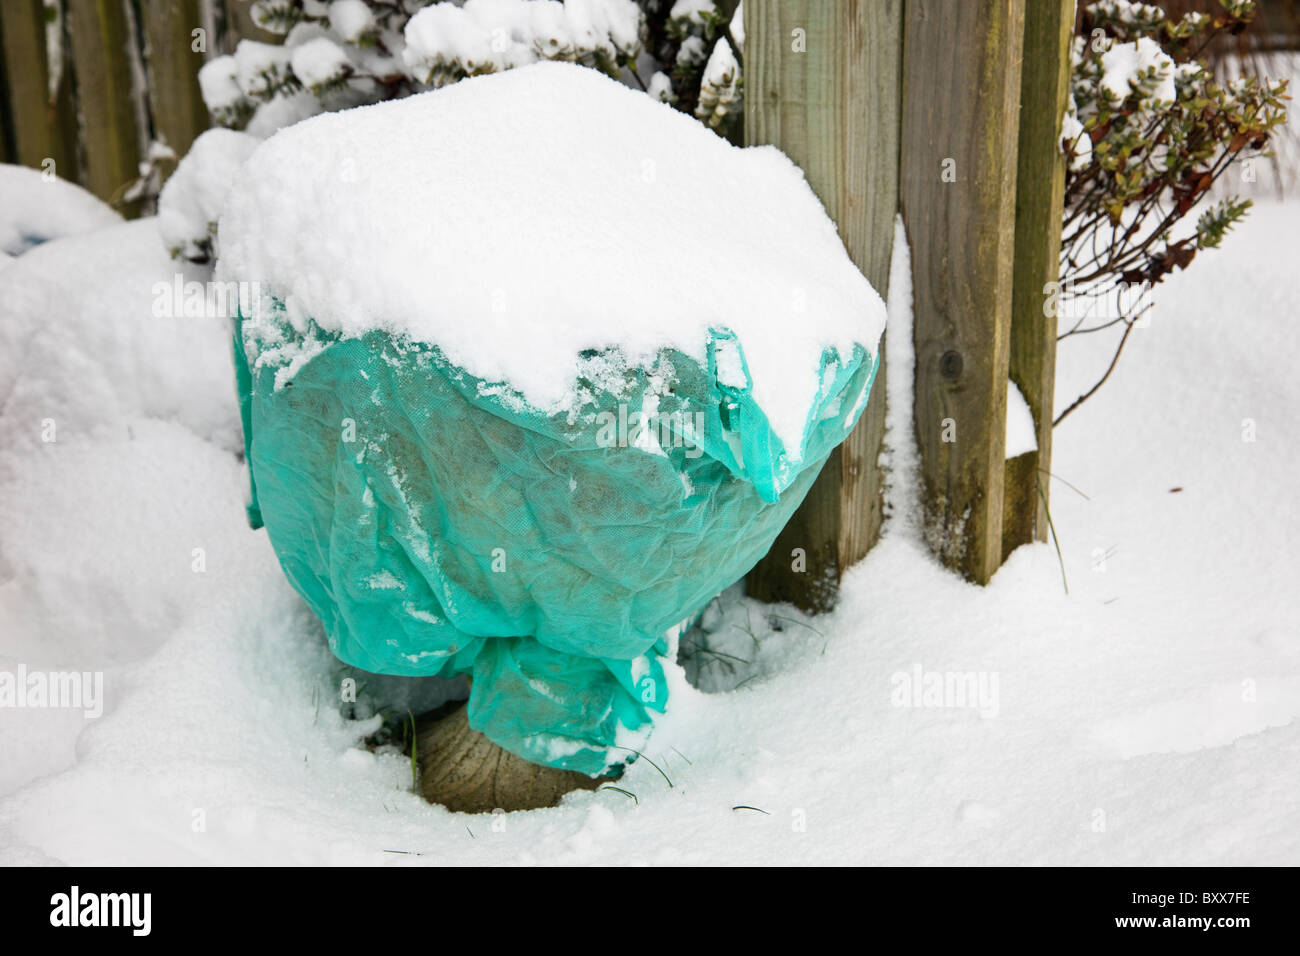 Horticultural fleece covers protecting outdoor garden plants against frost and snow in winter. UK - Stock Image